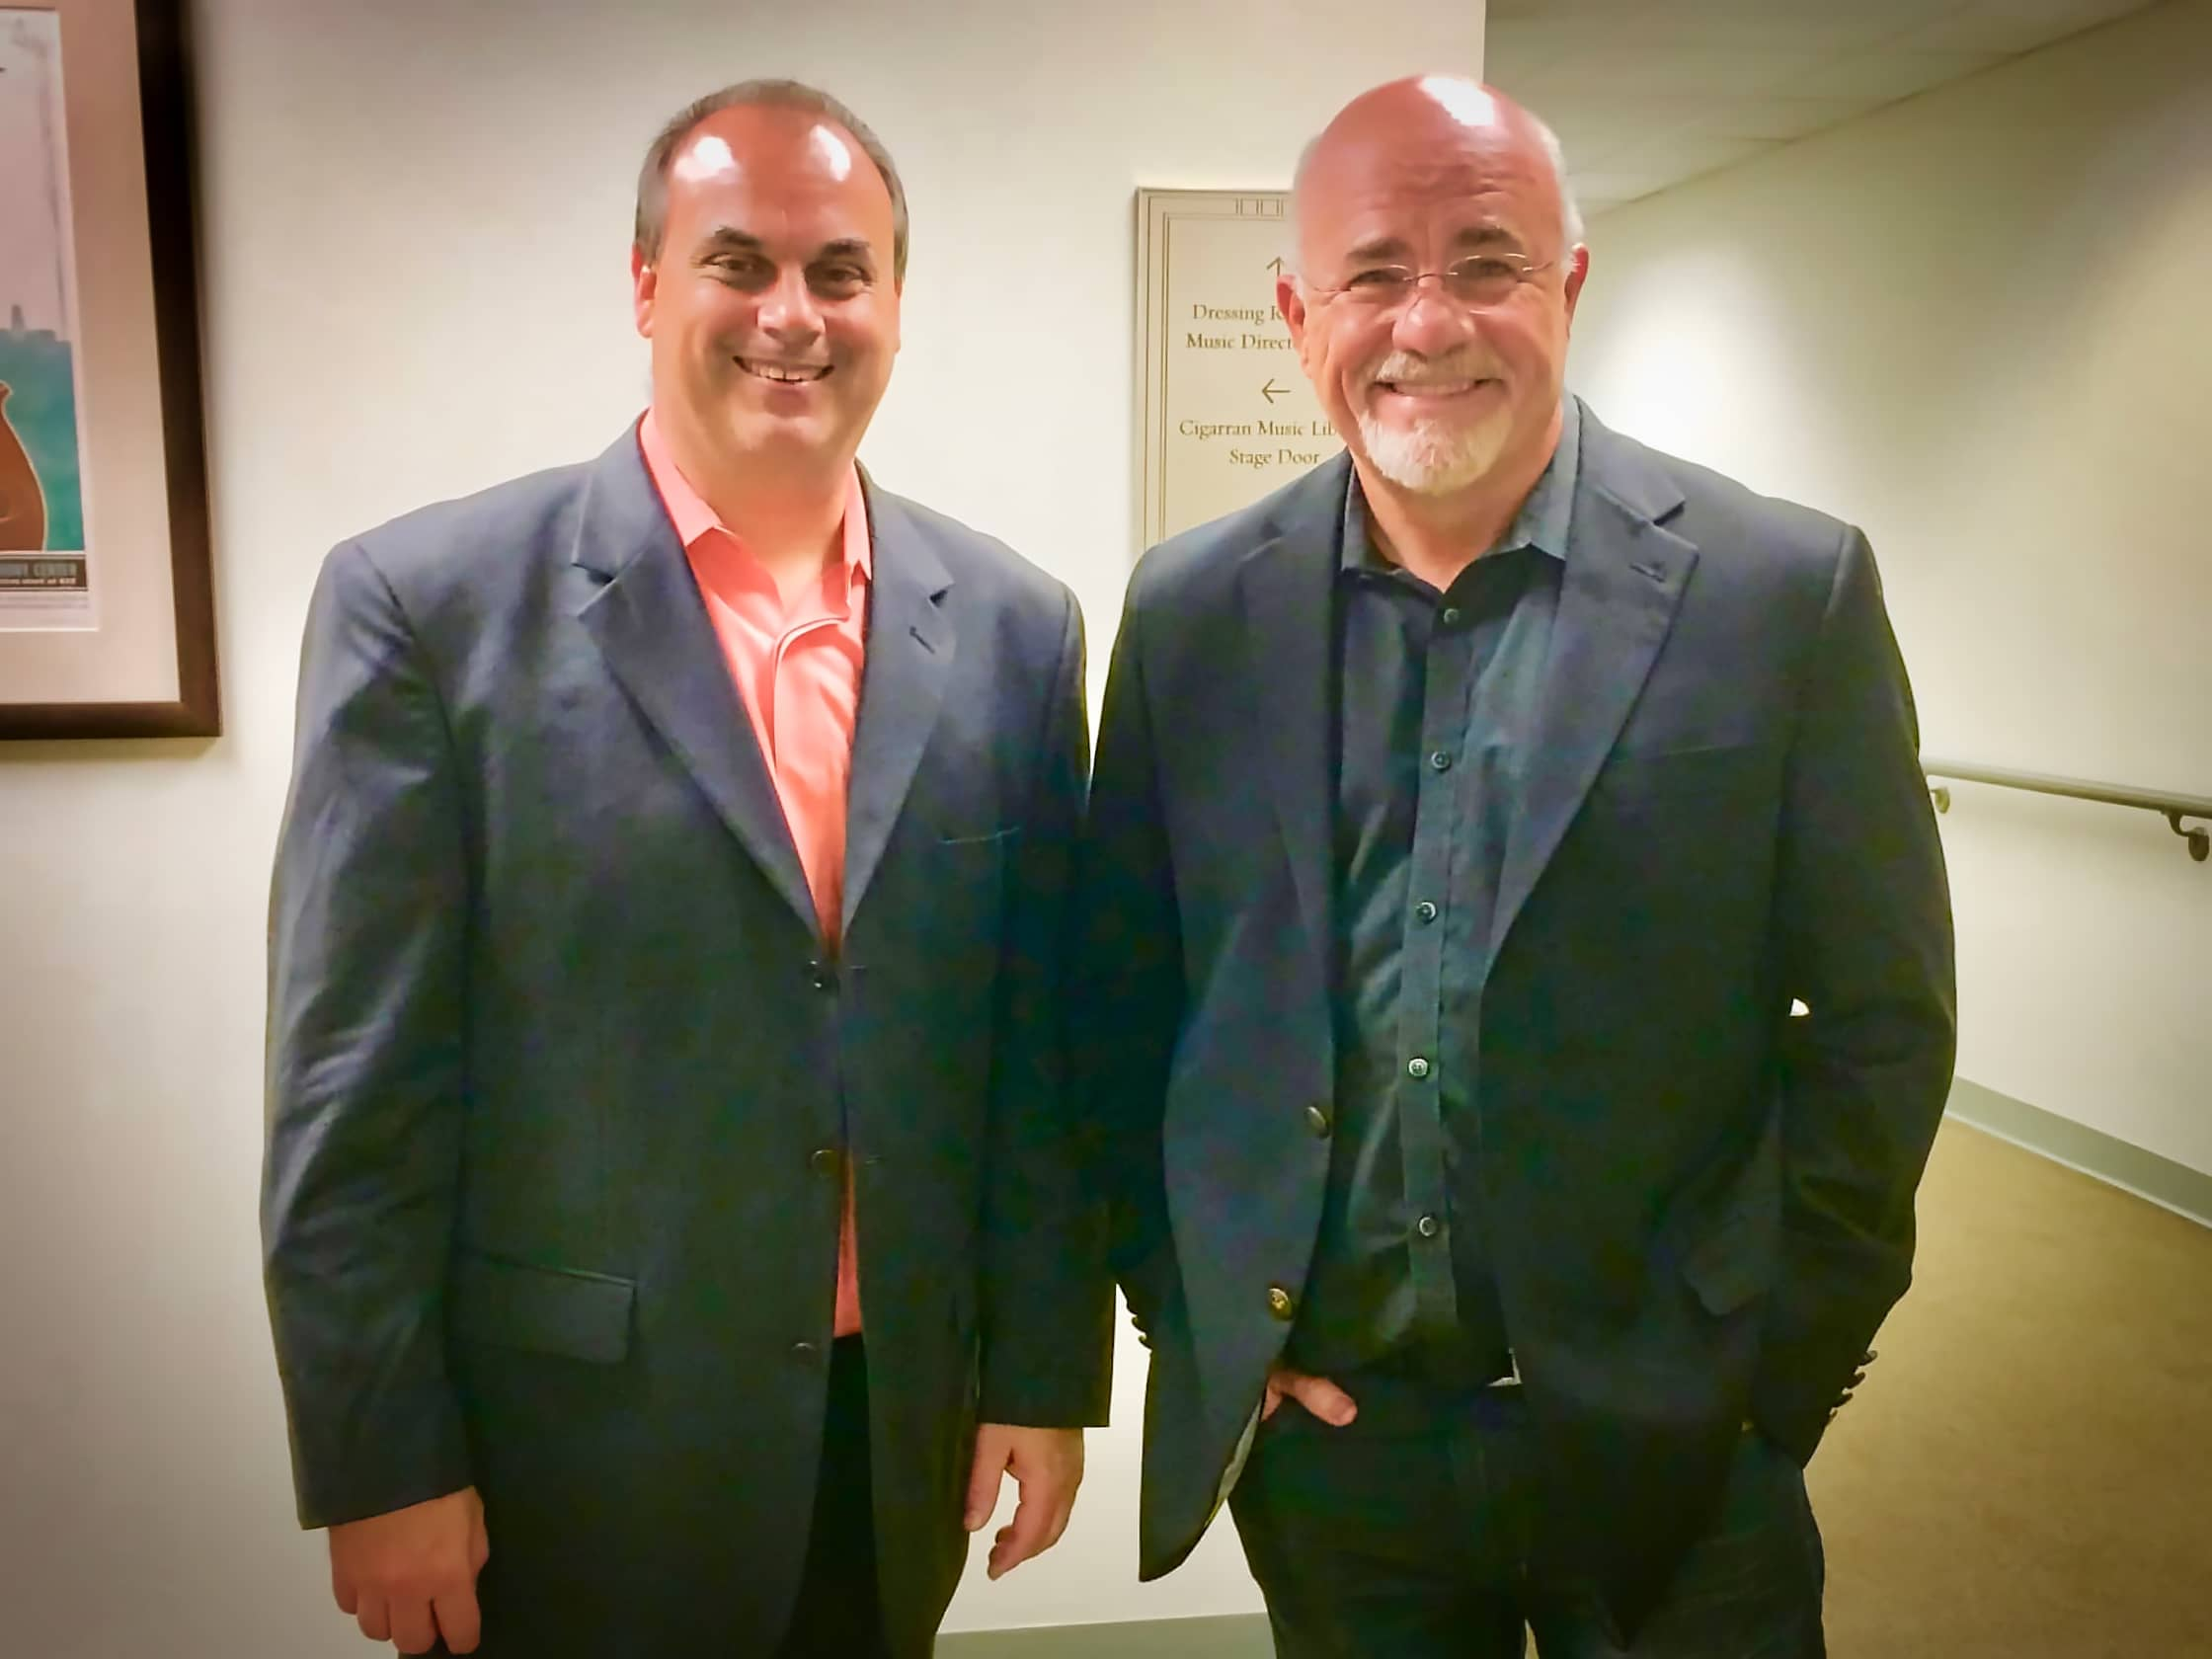 Jim with Dave Ramsey